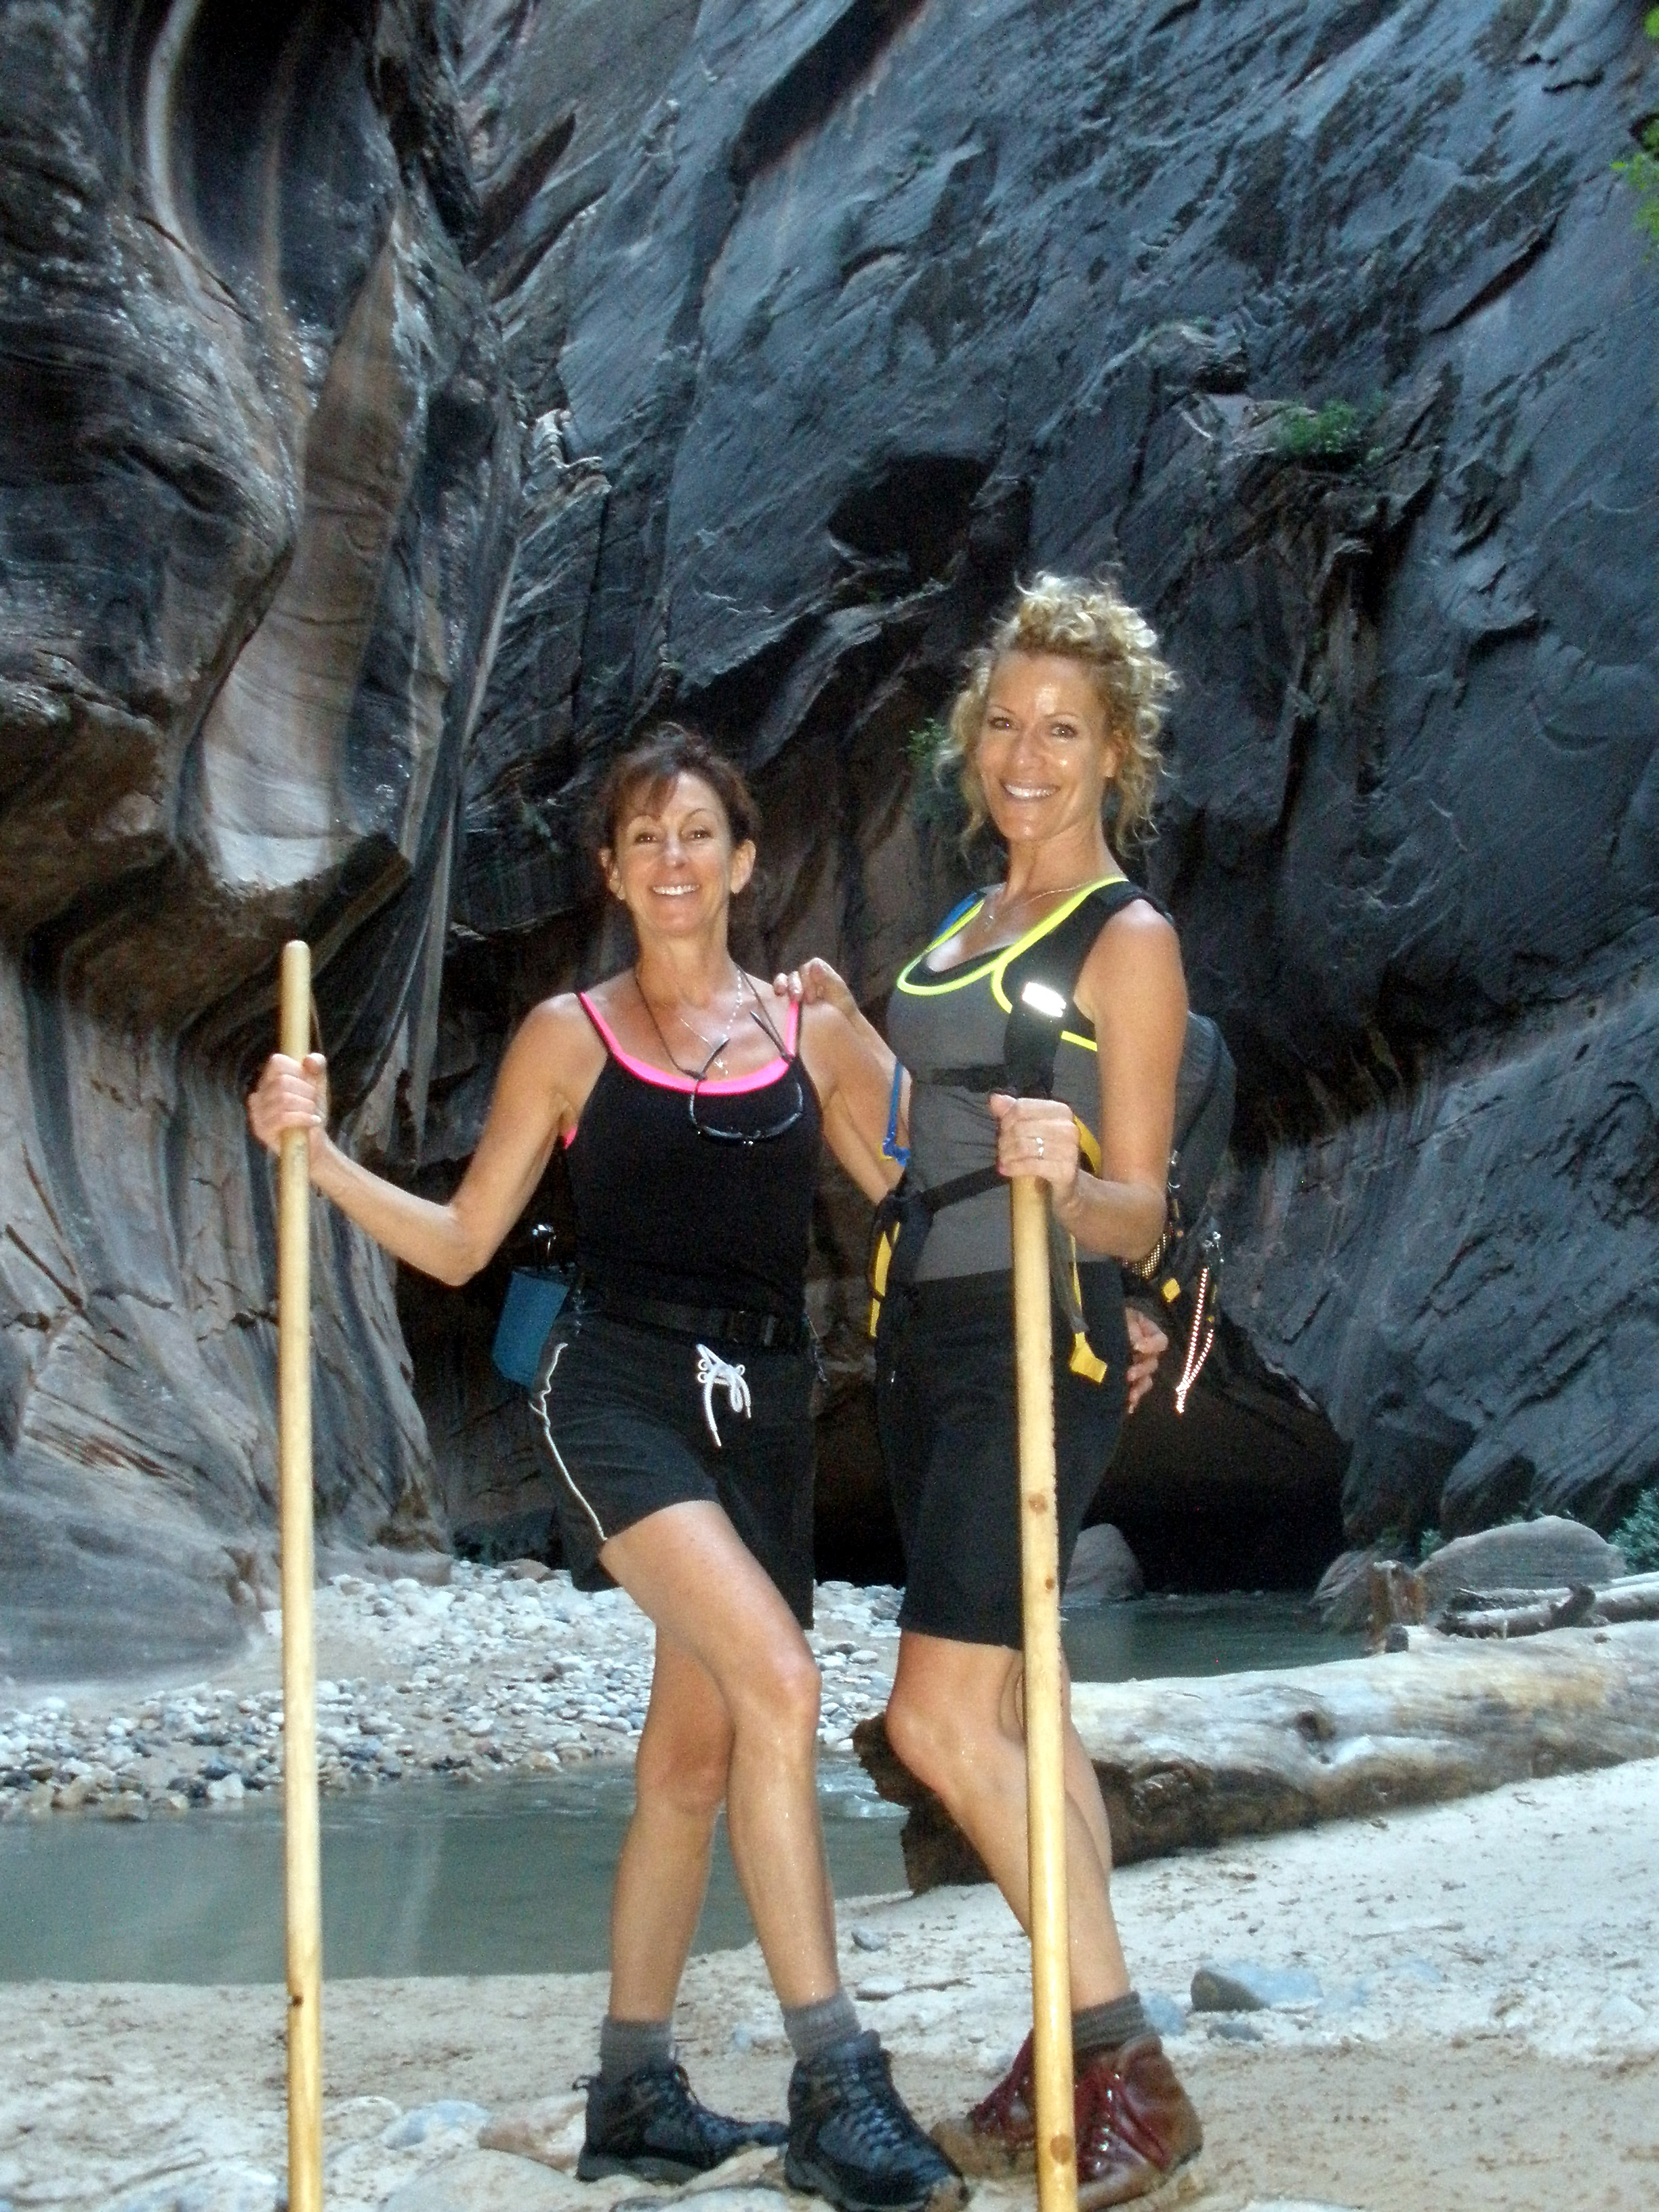 Vicki Whaley, Health Insurance Agent, Age 53, and Jami Hanna, Age 53, hiking  The Narrows , Zion National Park, UT.